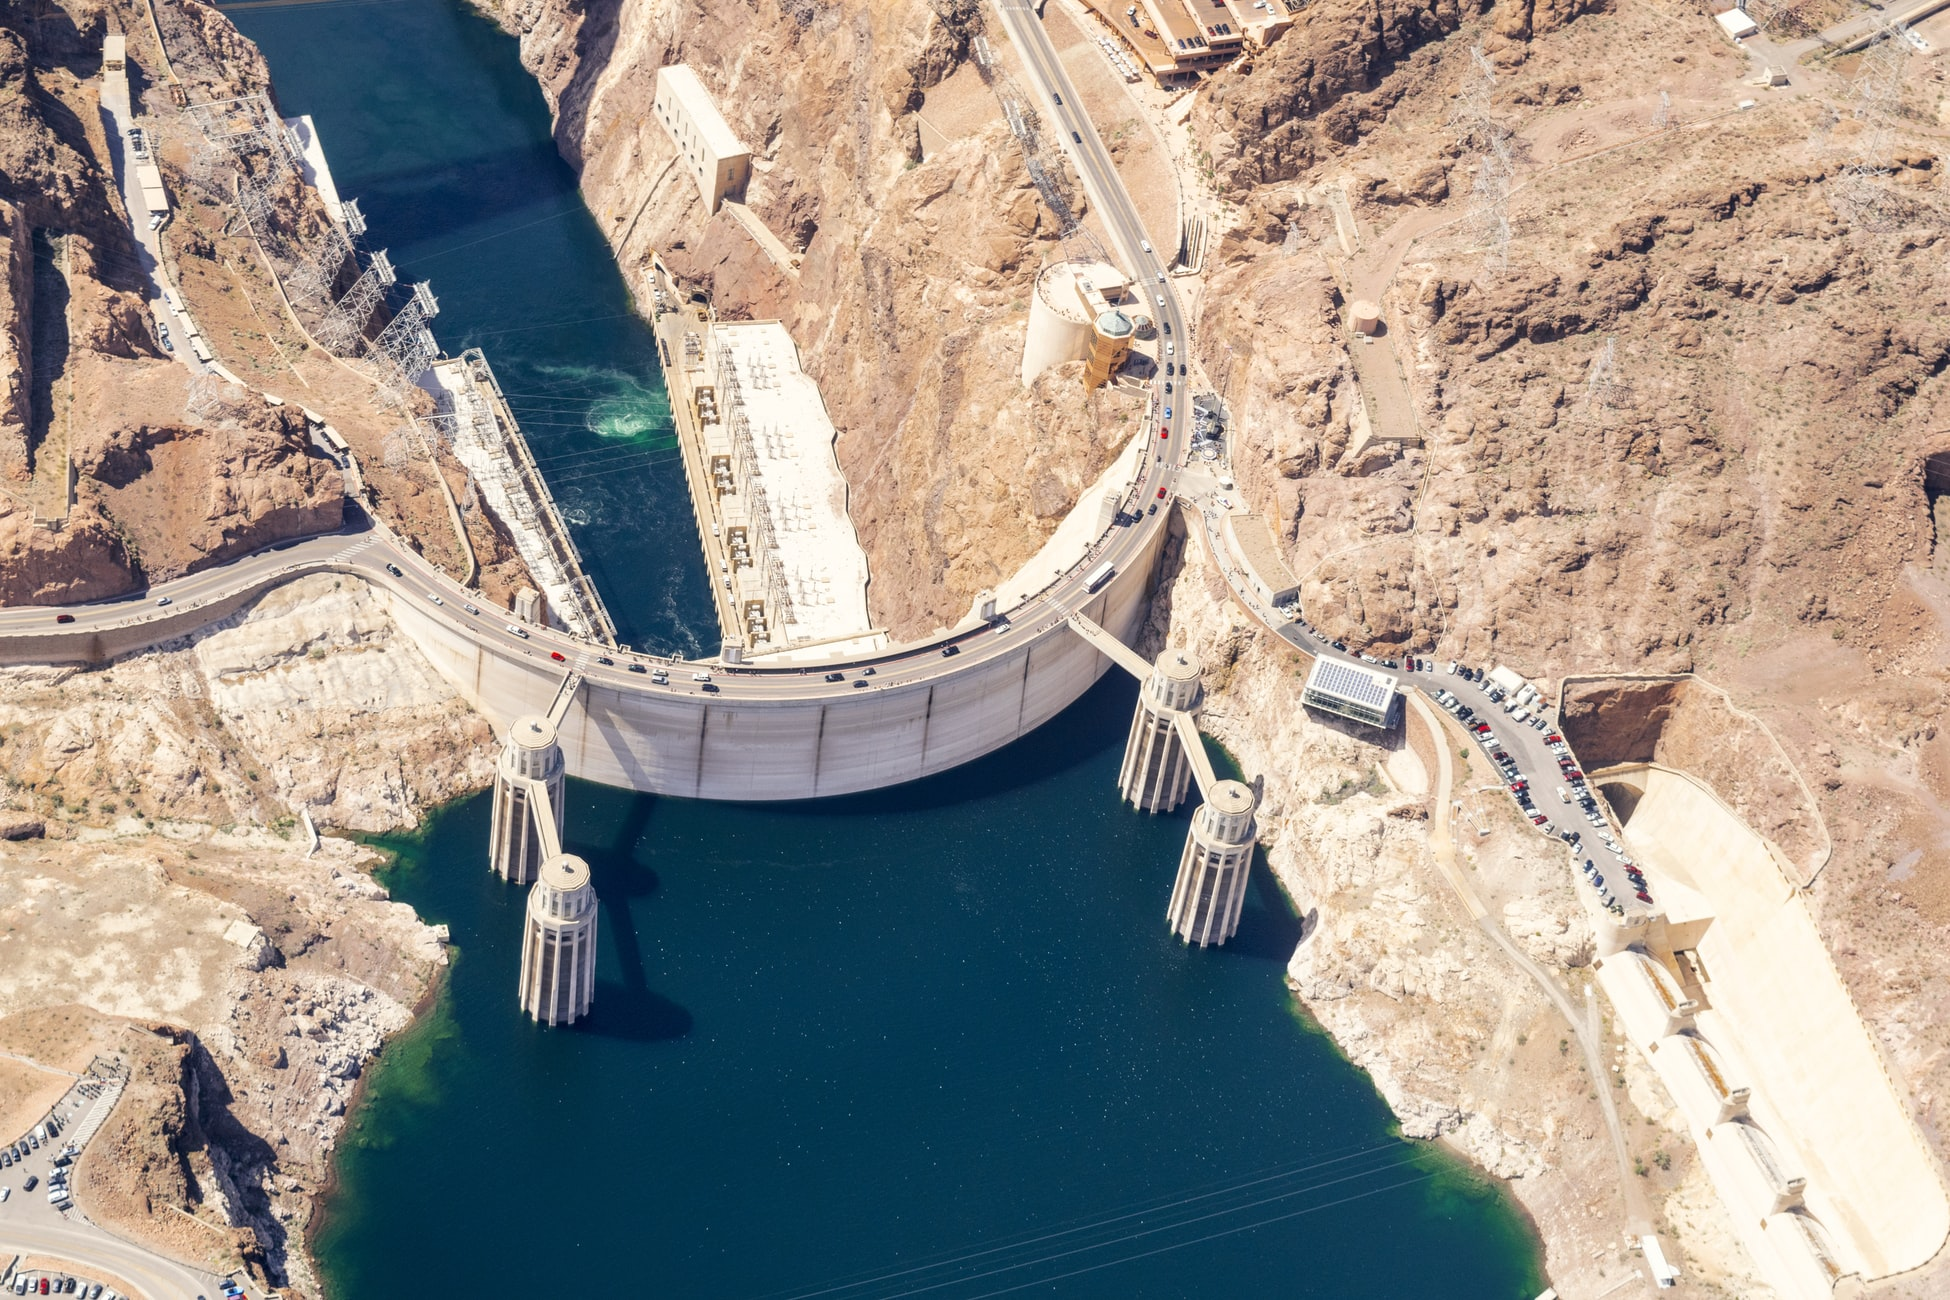 Hoover Dam by Cédric Dhaenens on Unsplash